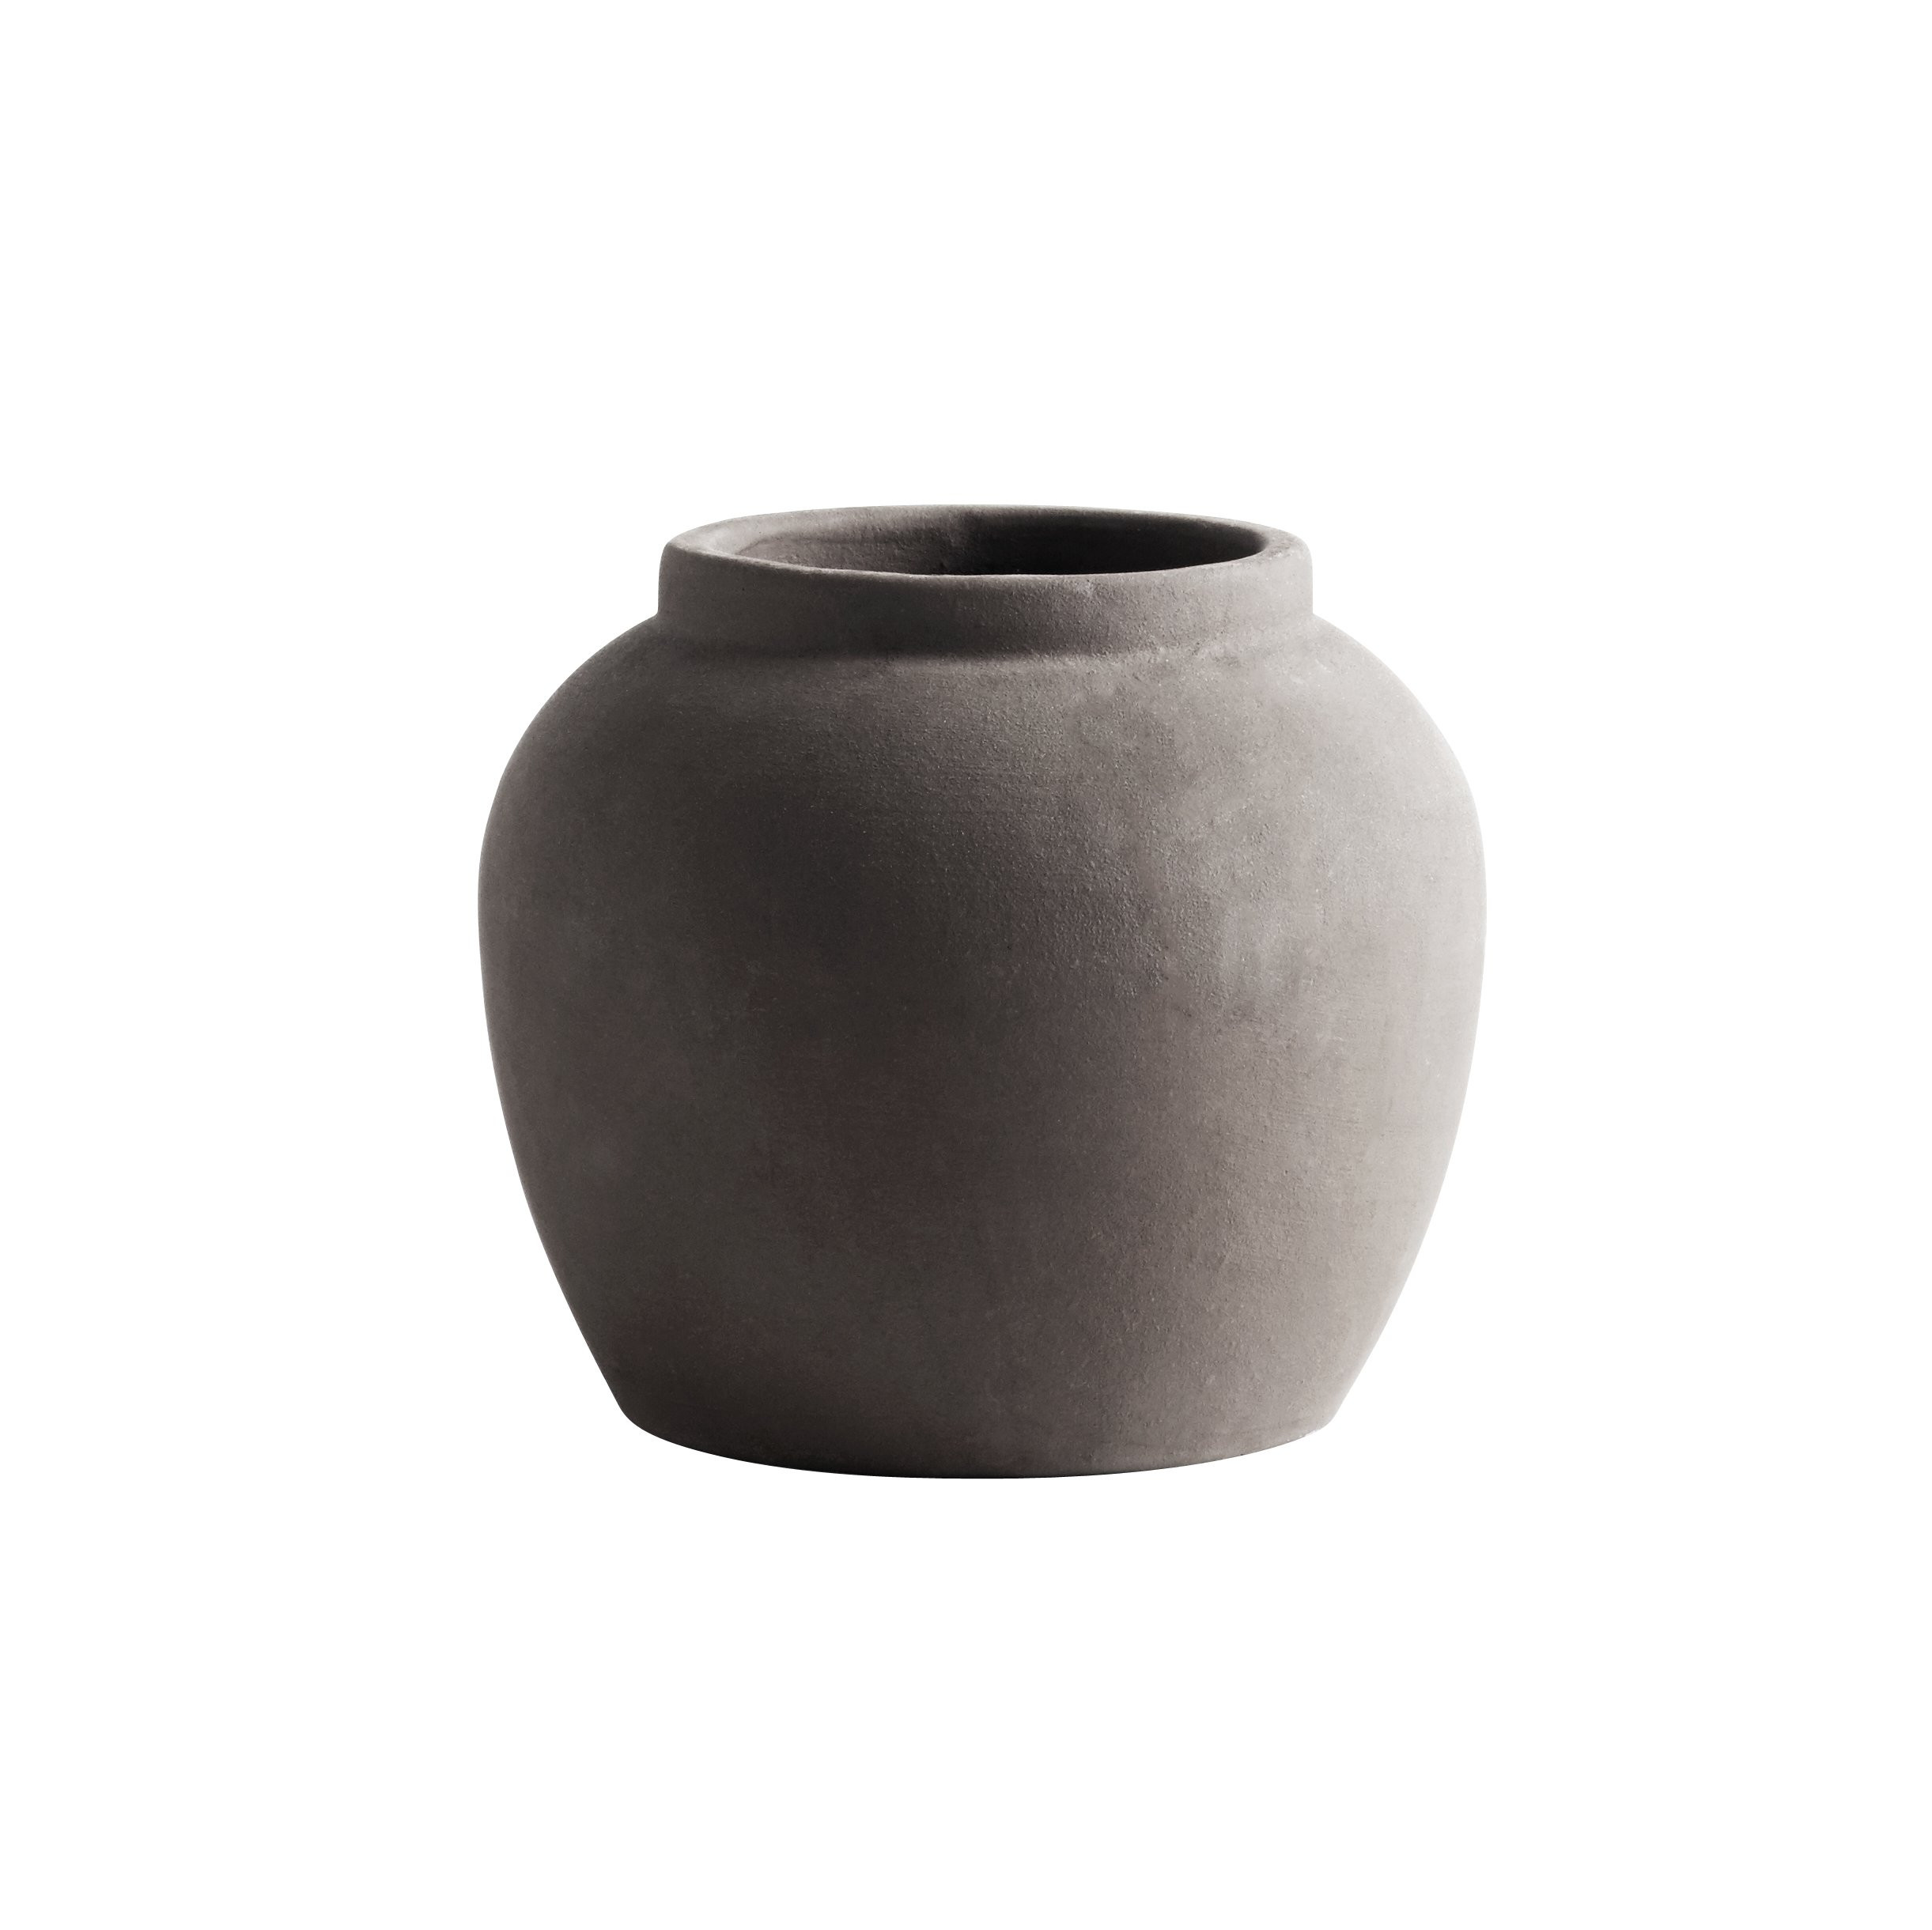 Ceramic Vase Shapes Of Jar Clay S D18xh24 Smoke Products Tine K Home Intended for Jarvase S Smo